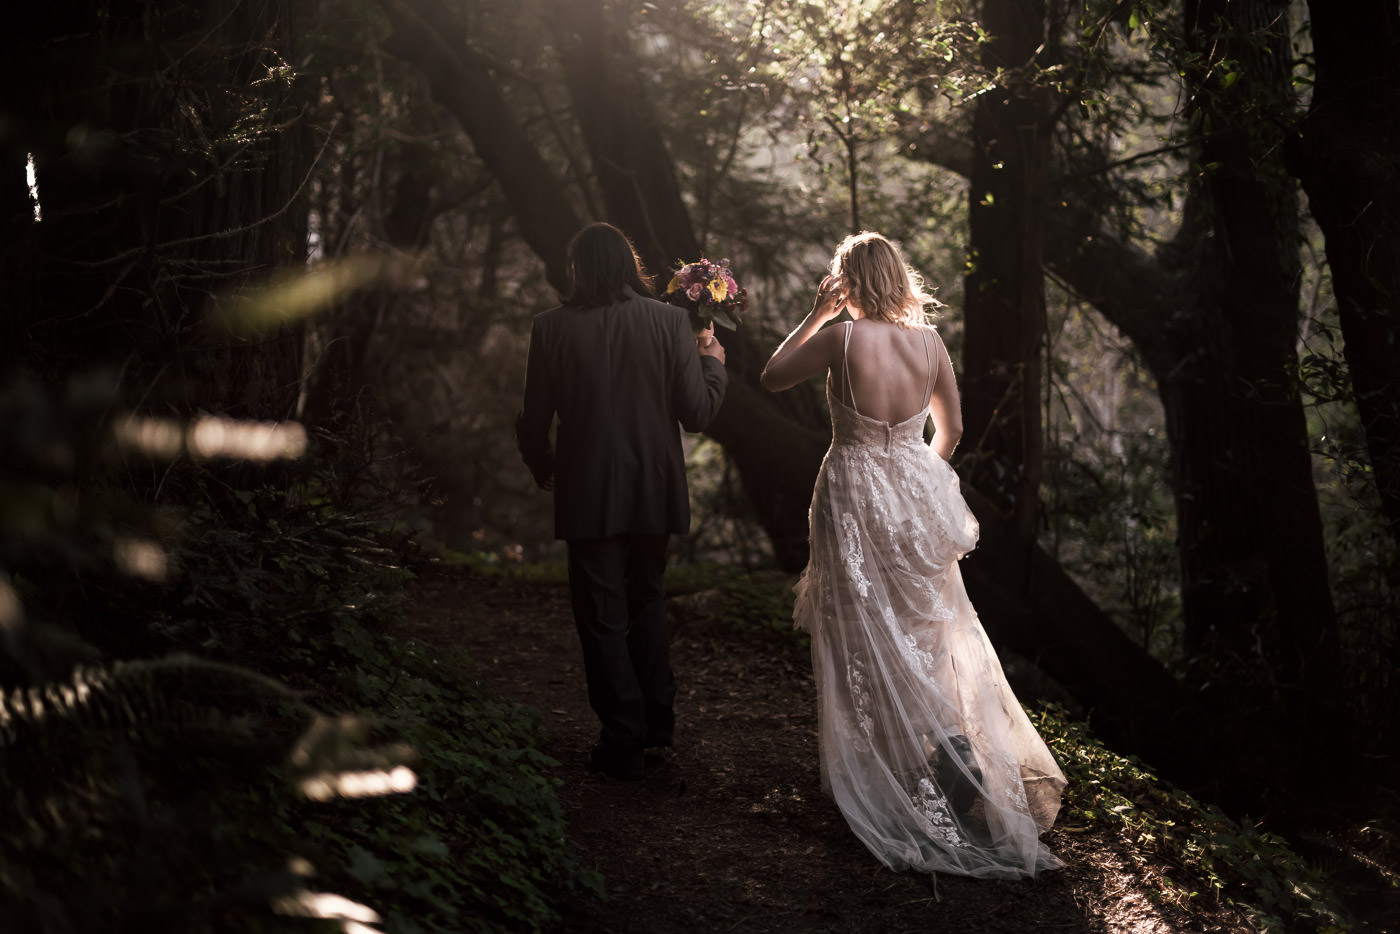 Newly married pair wnaders through the woods at sunset.